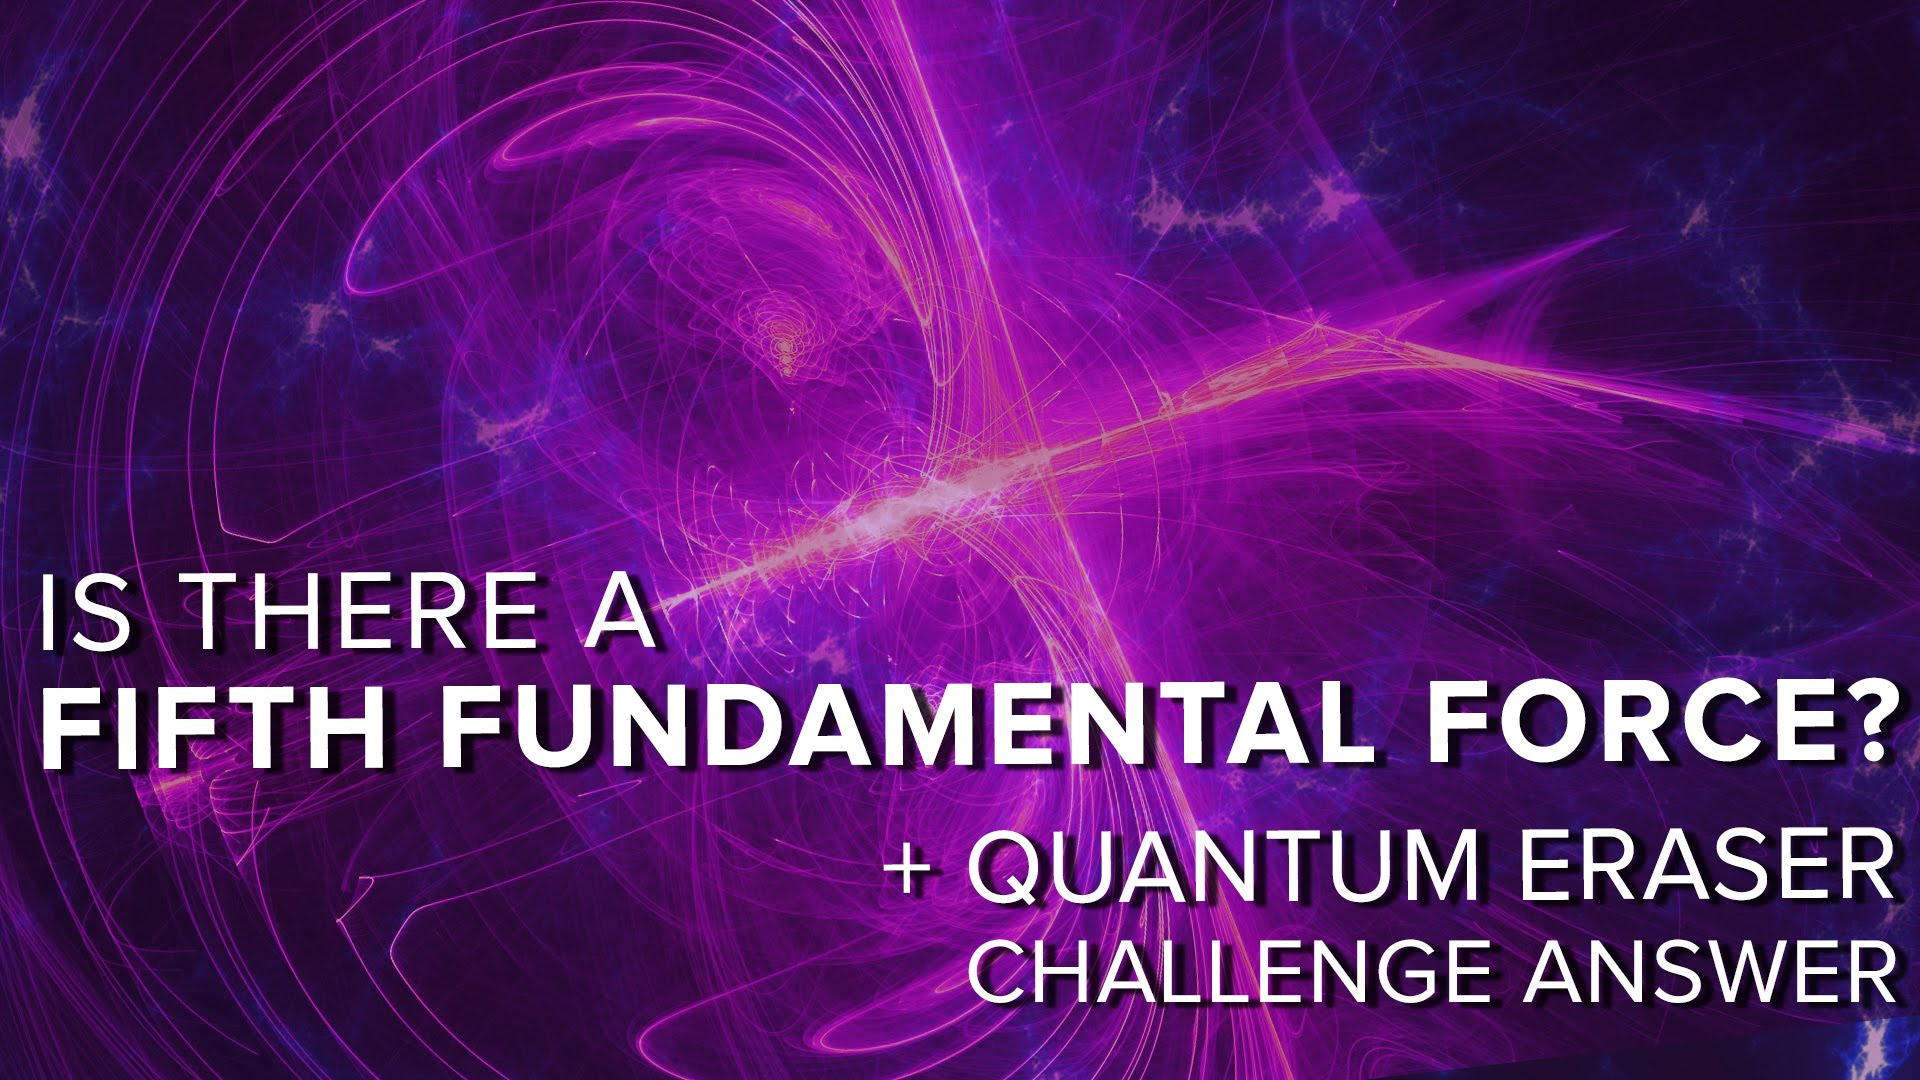 Is There a Fifth Fundamental Force?